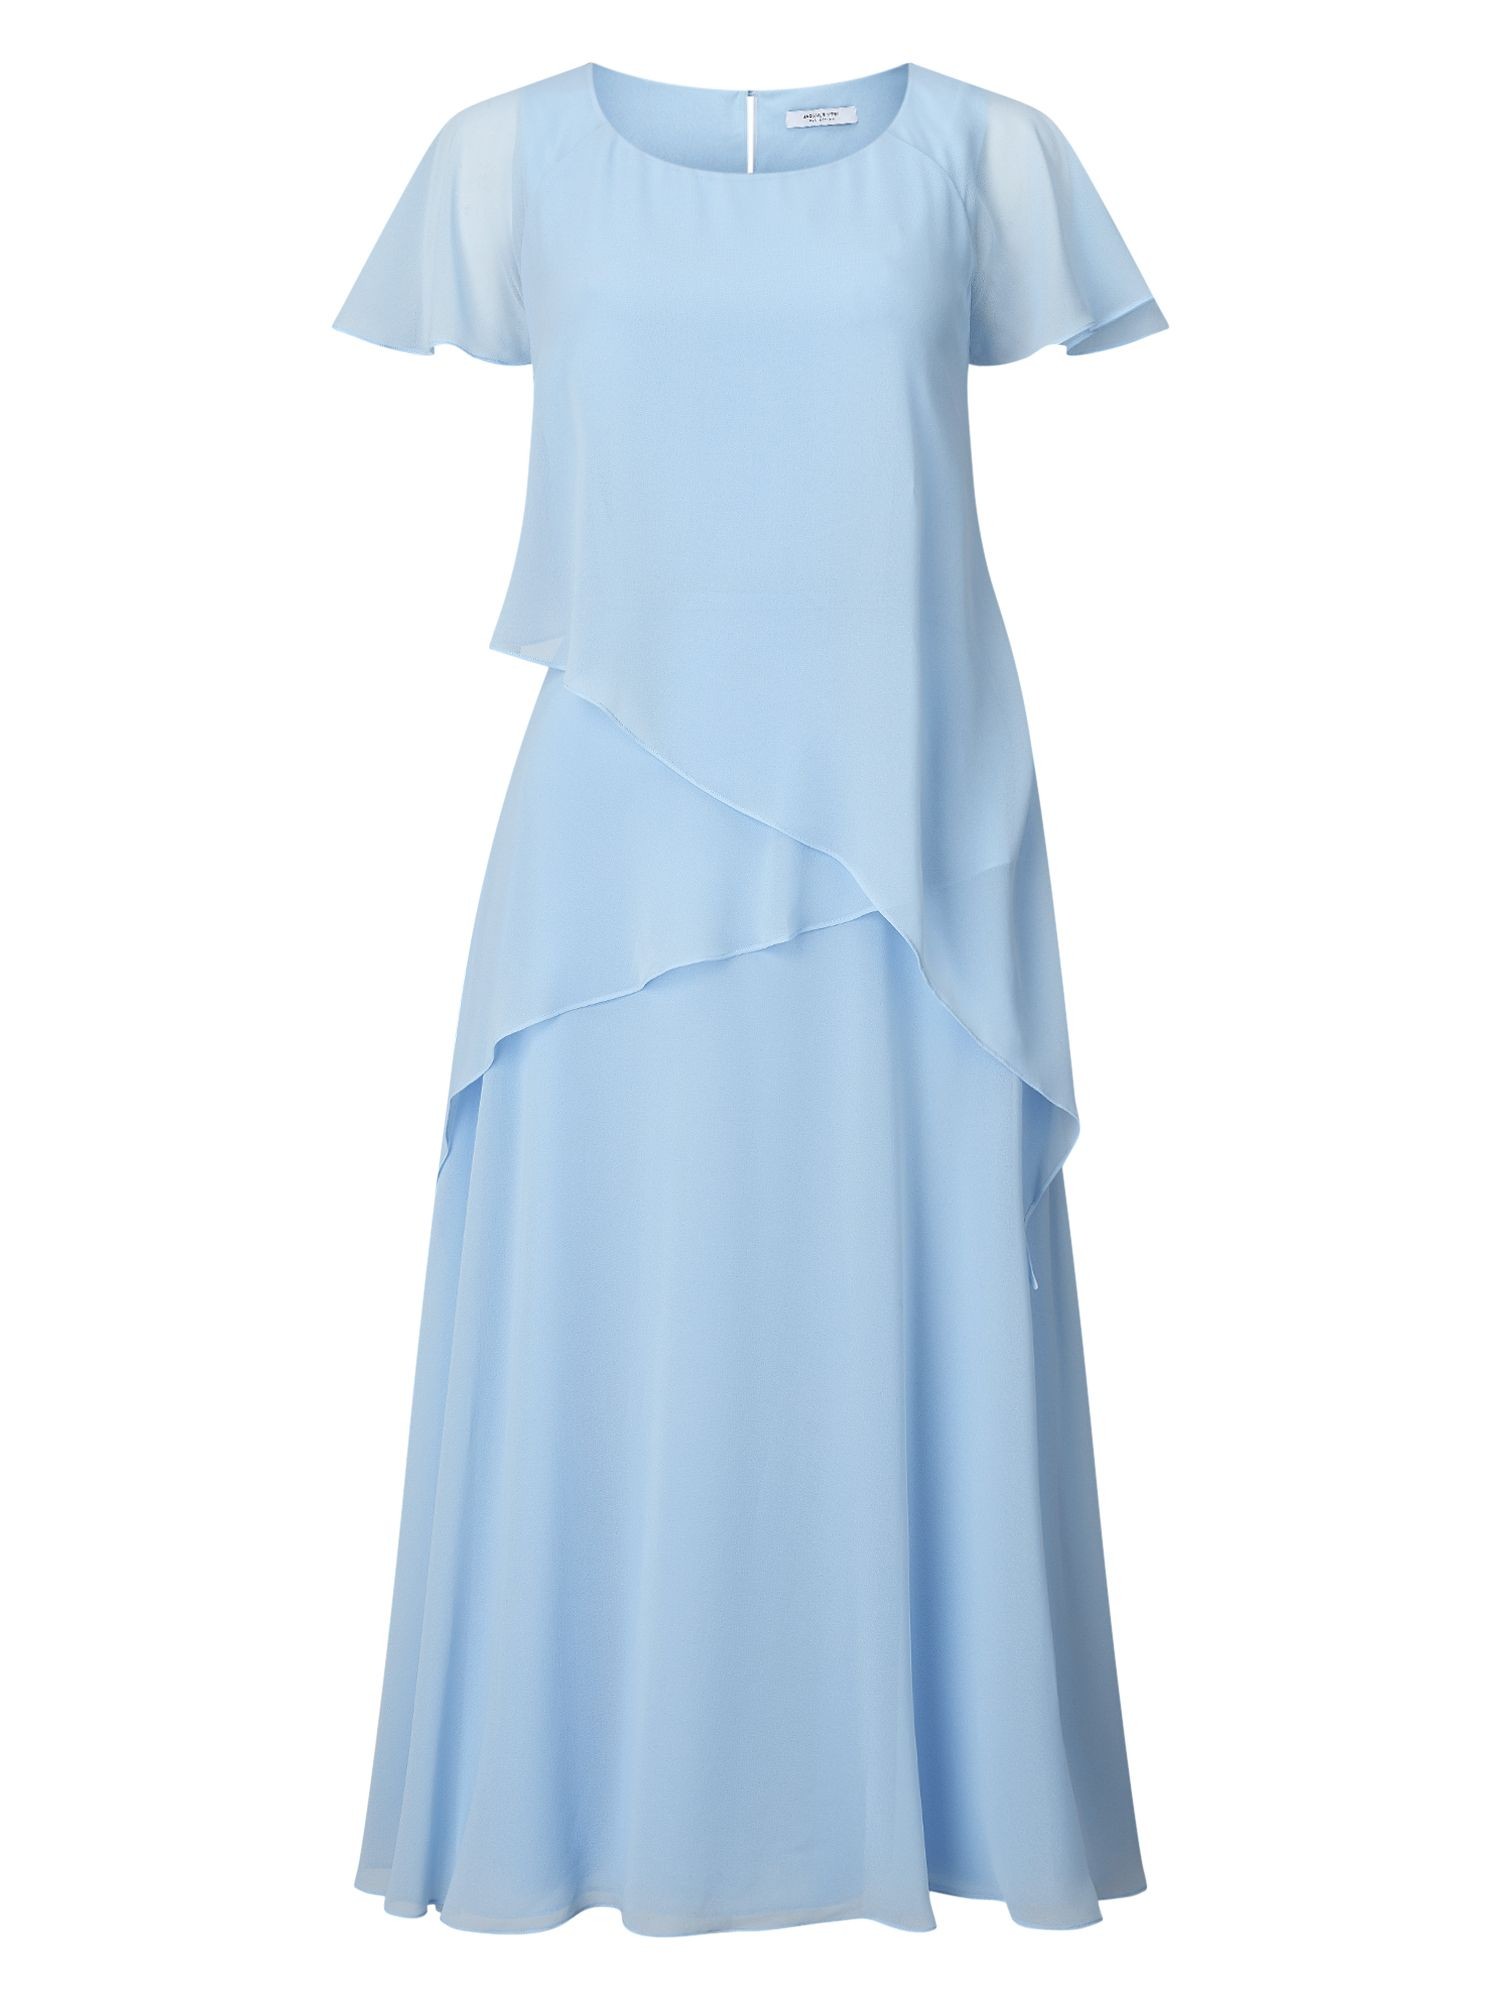 Jacques Vert Soft Tie Detail Dress, Blue